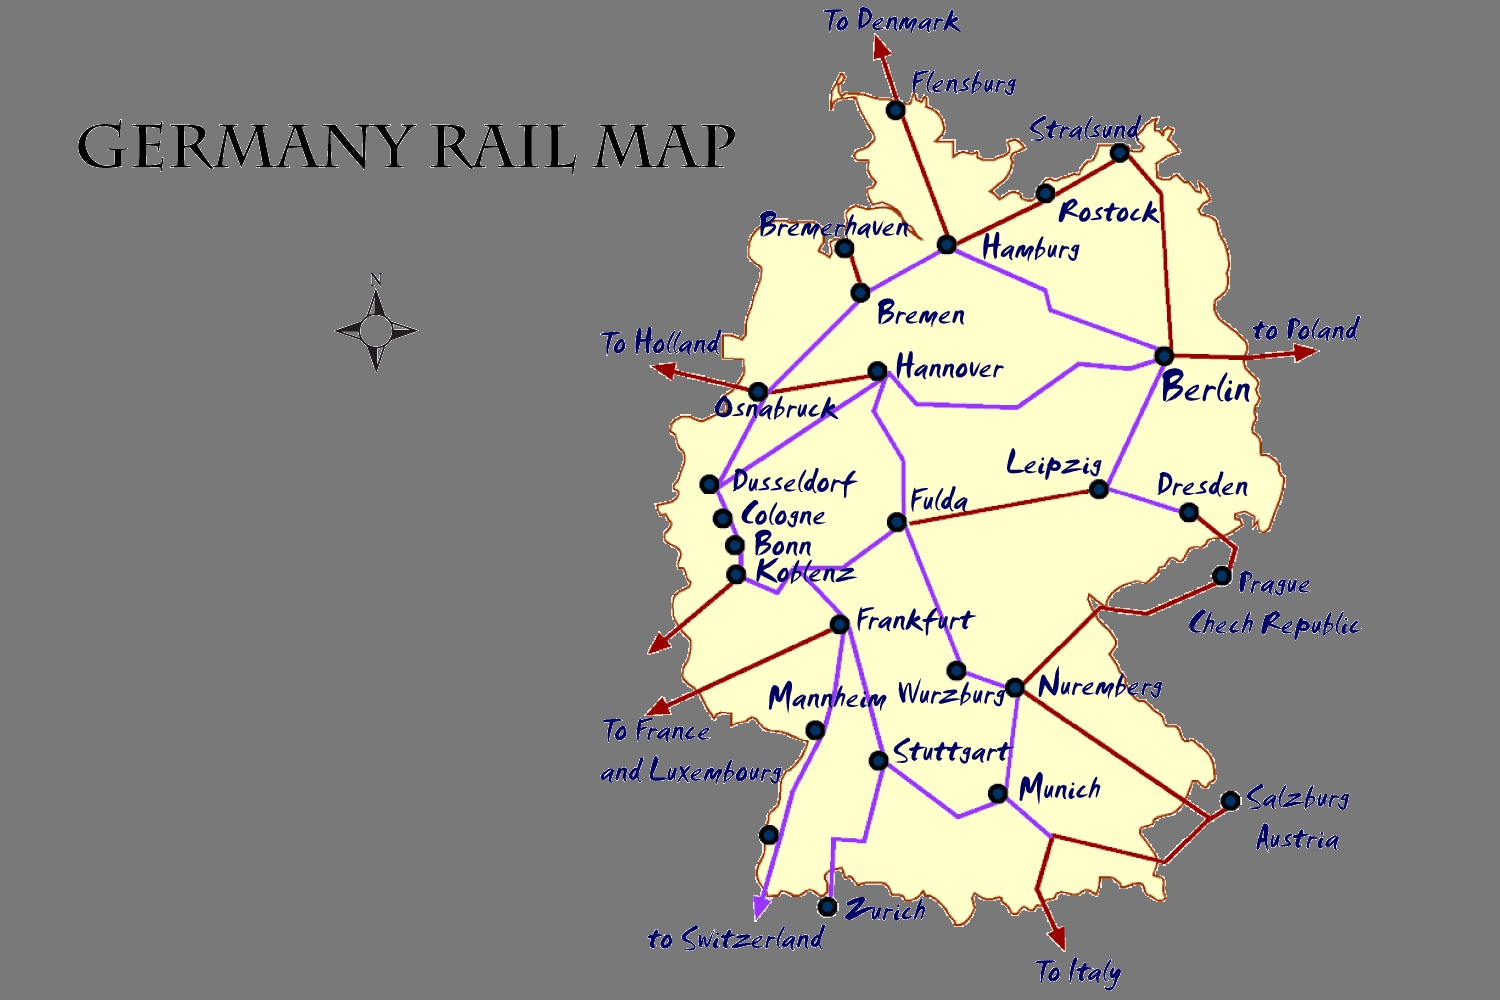 How To Travel Throughout Germanyrail   Germany   Train Route intended for German Rail Map Bavaria